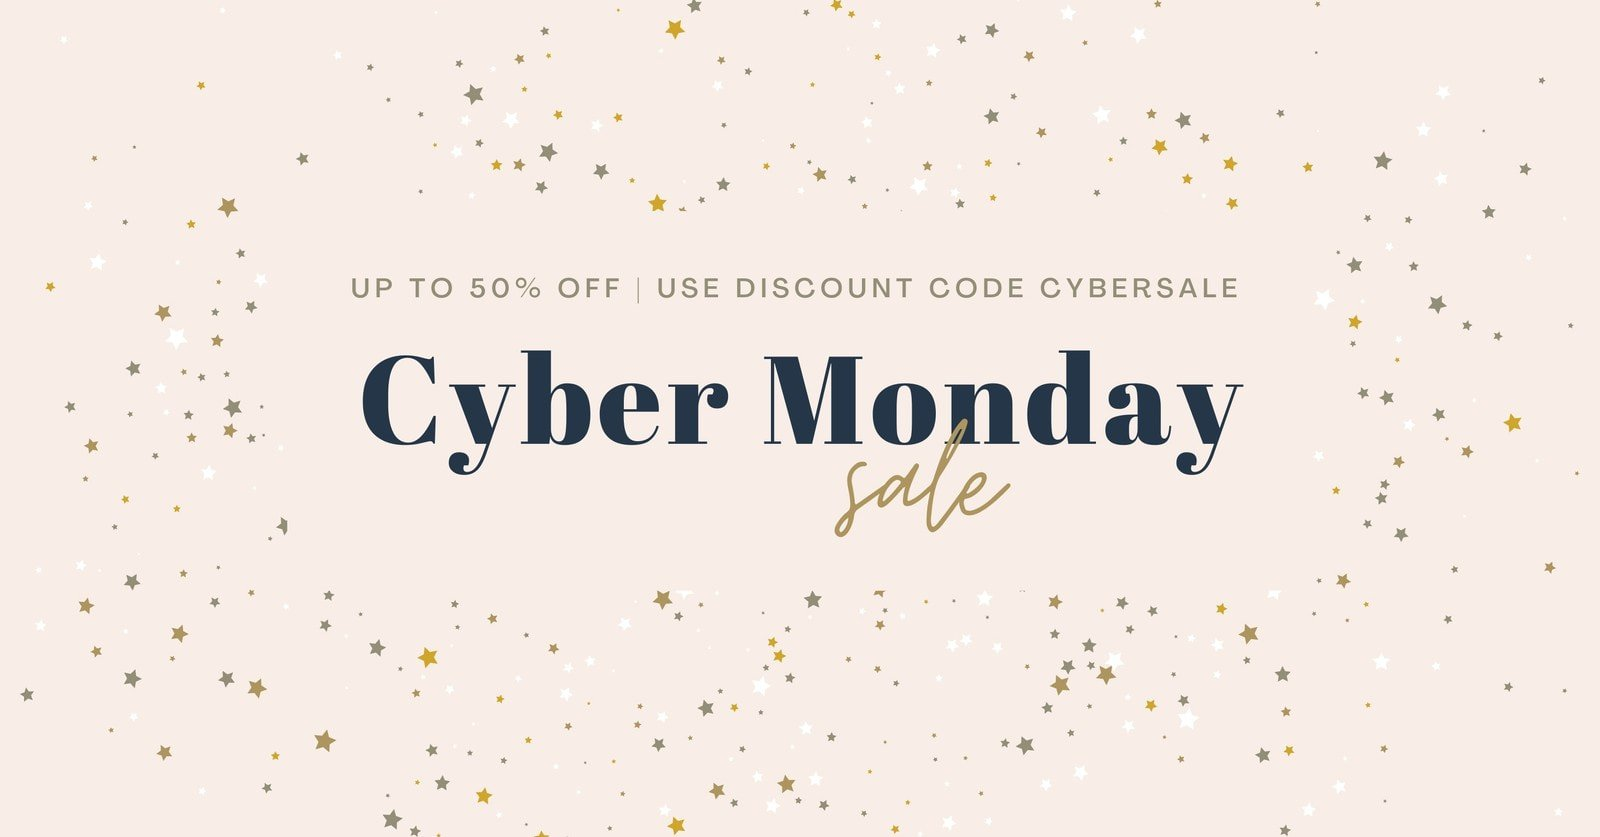 Elegant Cyber Monday Sale Facebook Ad with Starry Confetti Background